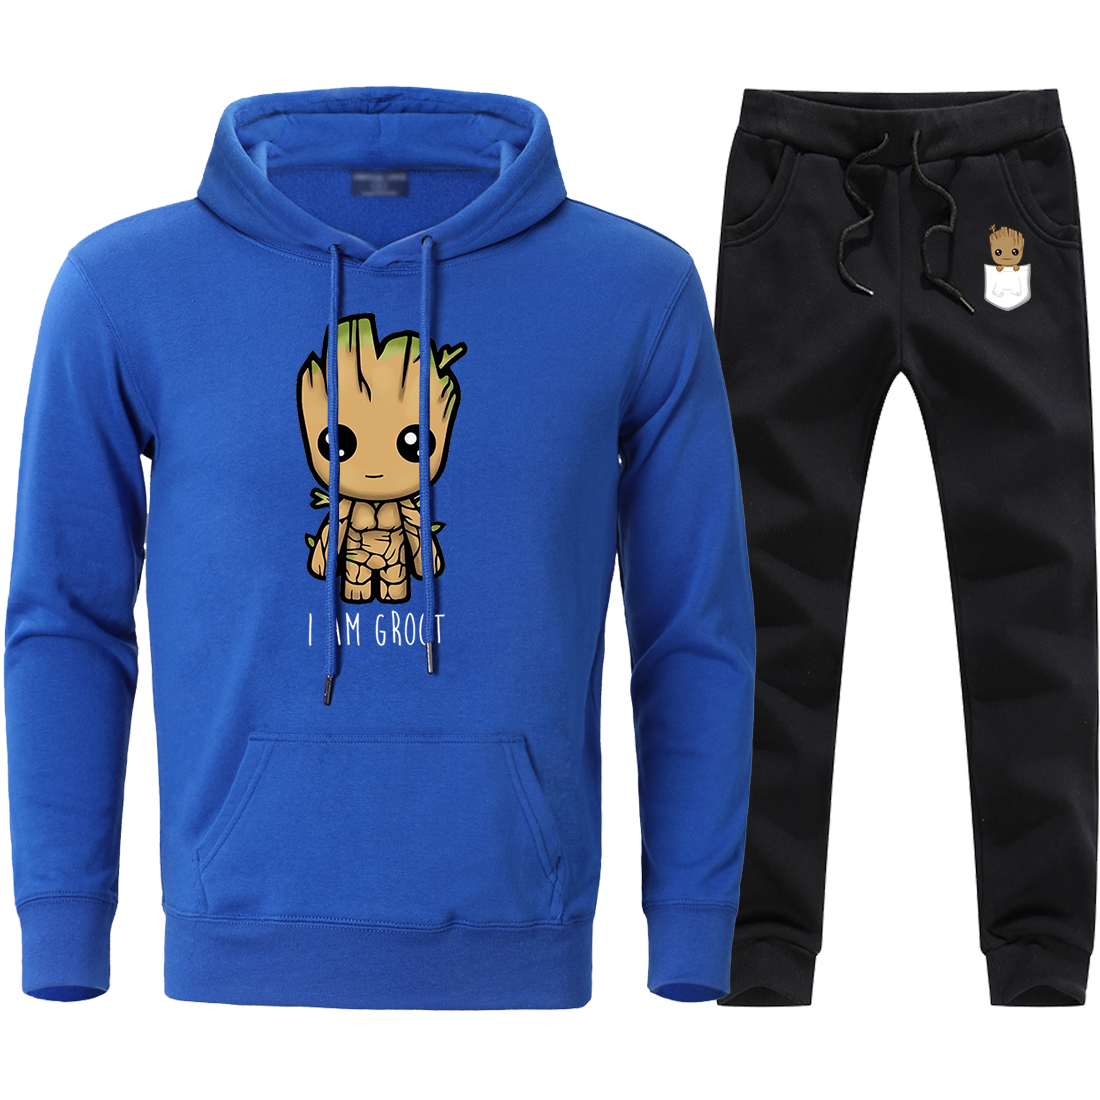 I Am Groot Print Mens Sets Autumn Winter Fleece Hoodies Sweatshirts + Sweatpants Sets 2020 Man Causal Tracksuits 2 Pieces Suits